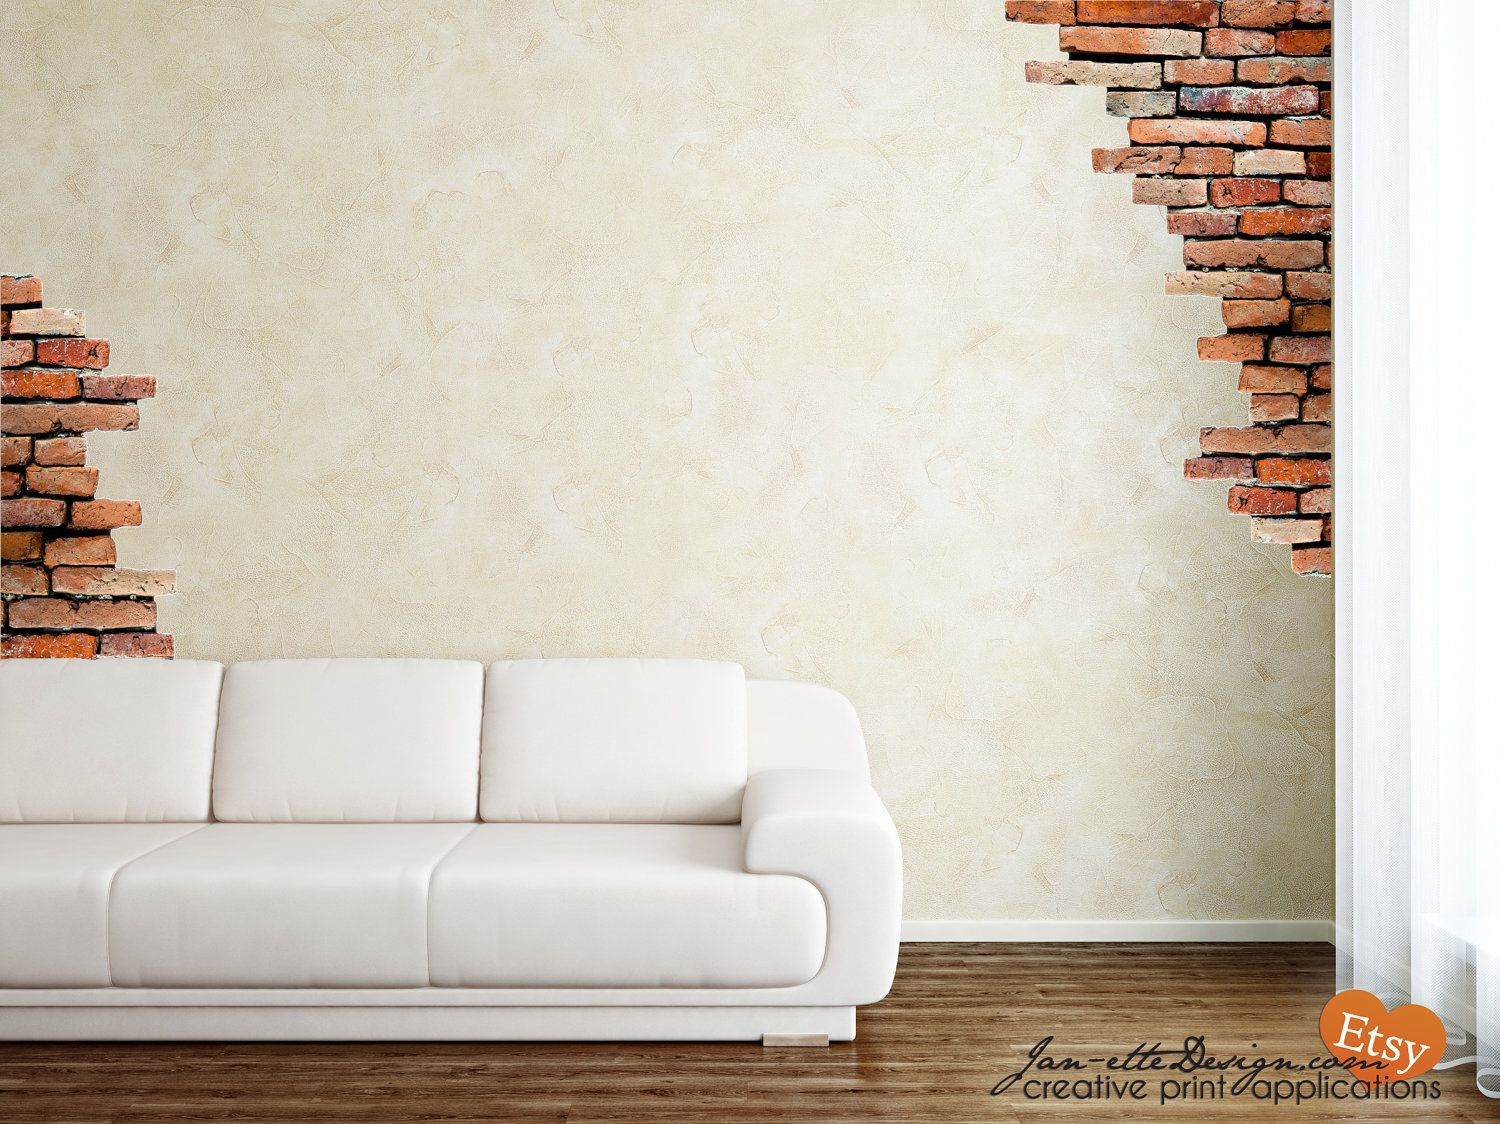 Superieur Wall+Decals+Brick+Wall+Fabric+Wall+Decal+Set+